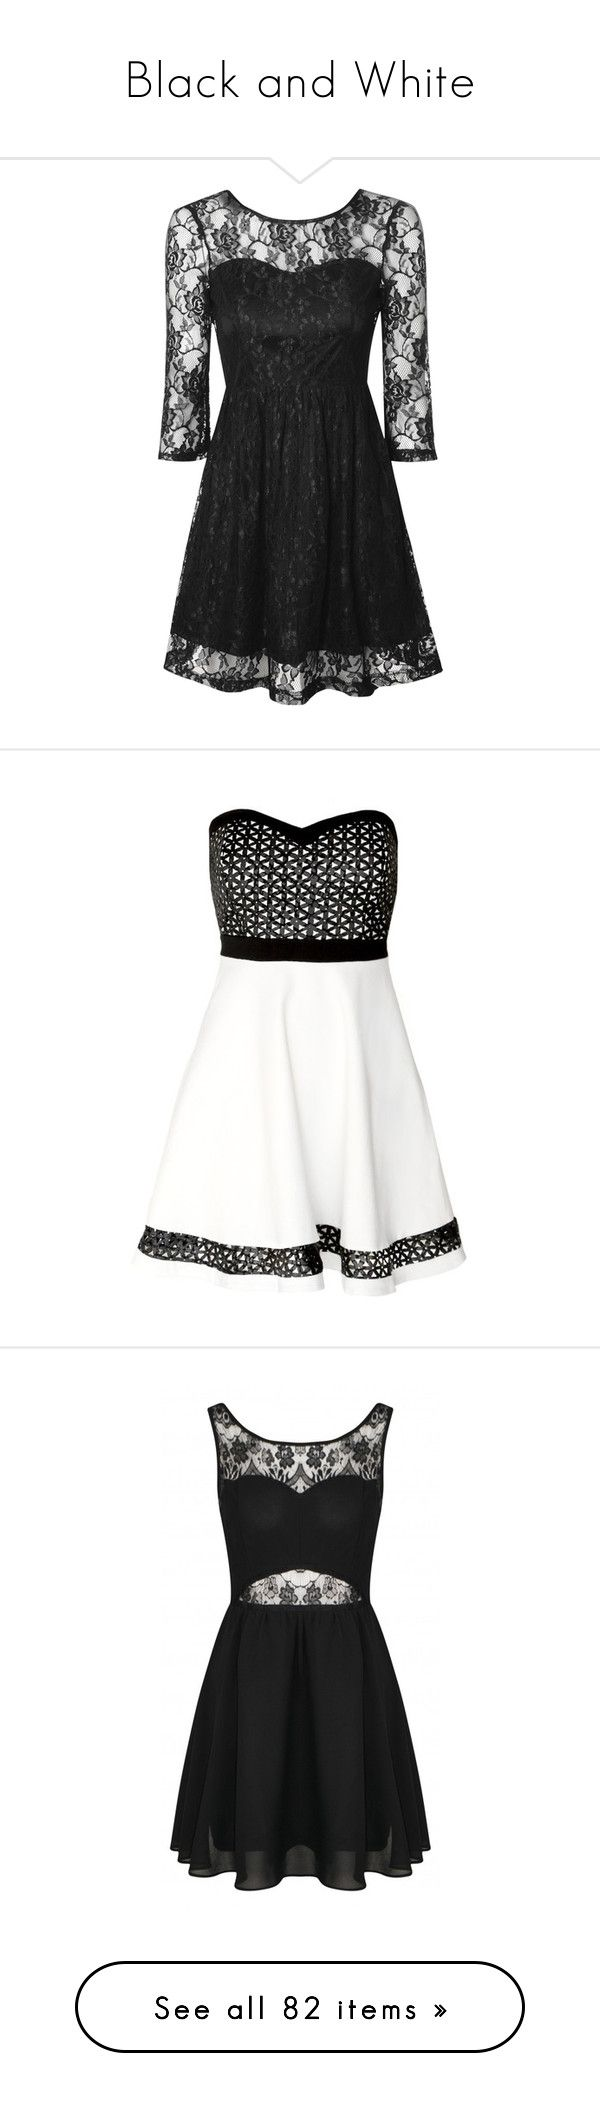 """Black and White"" by celine-cheong ❤ liked on Polyvore featuring dresses, short dresses, black, robes, 3/4 sleeve cocktail dress, long-sleeve skater dresses, lace skater dress, fit and flare cocktail dress, maxi dresses and white dress"